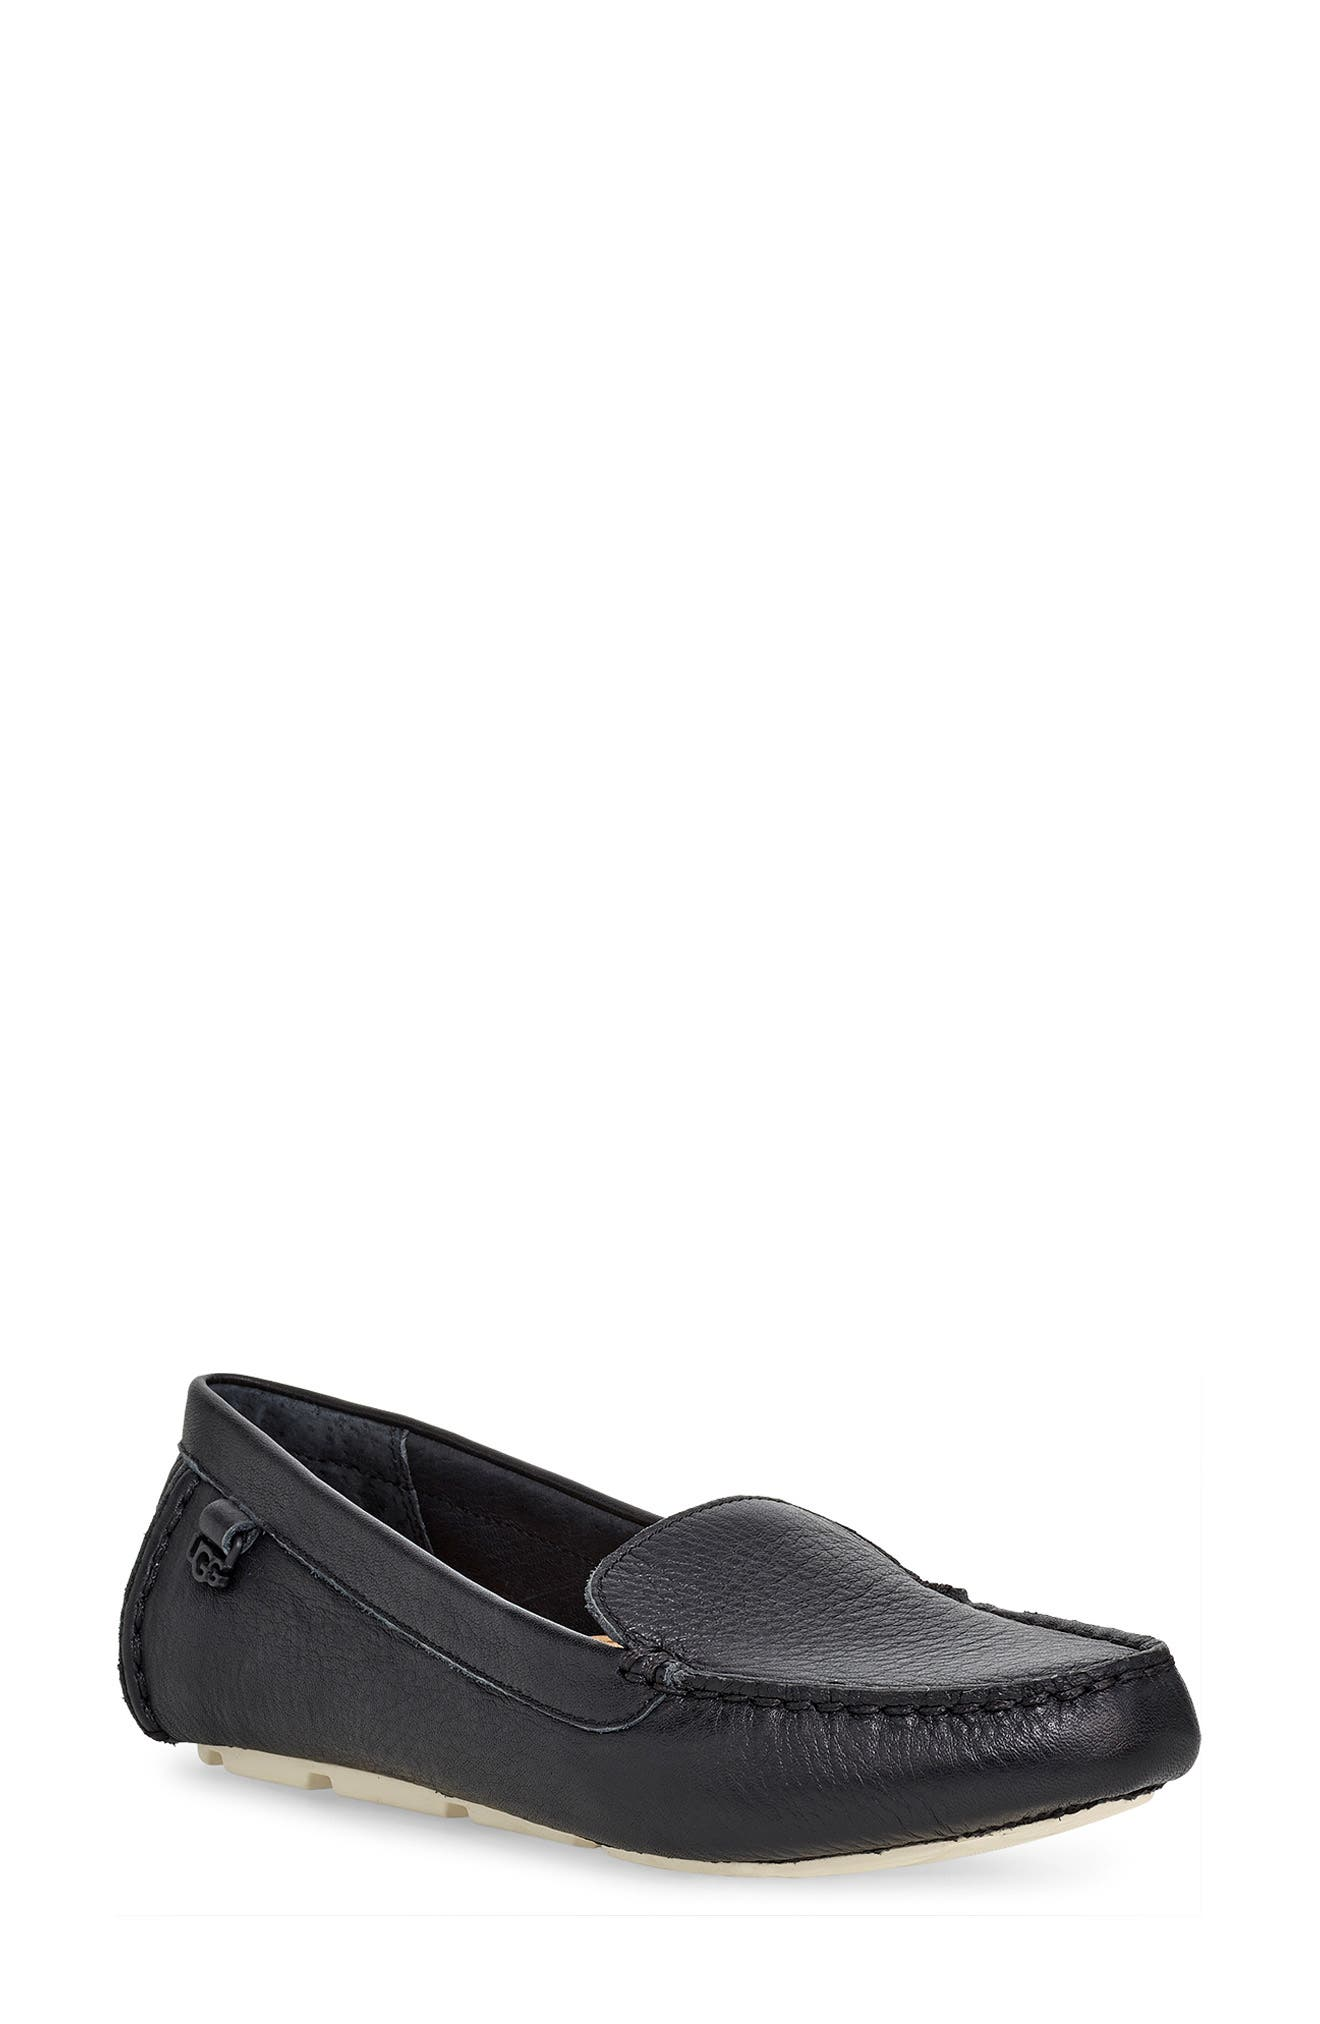 Flores Driving Loafer, Main, color, BLACK LEATHER